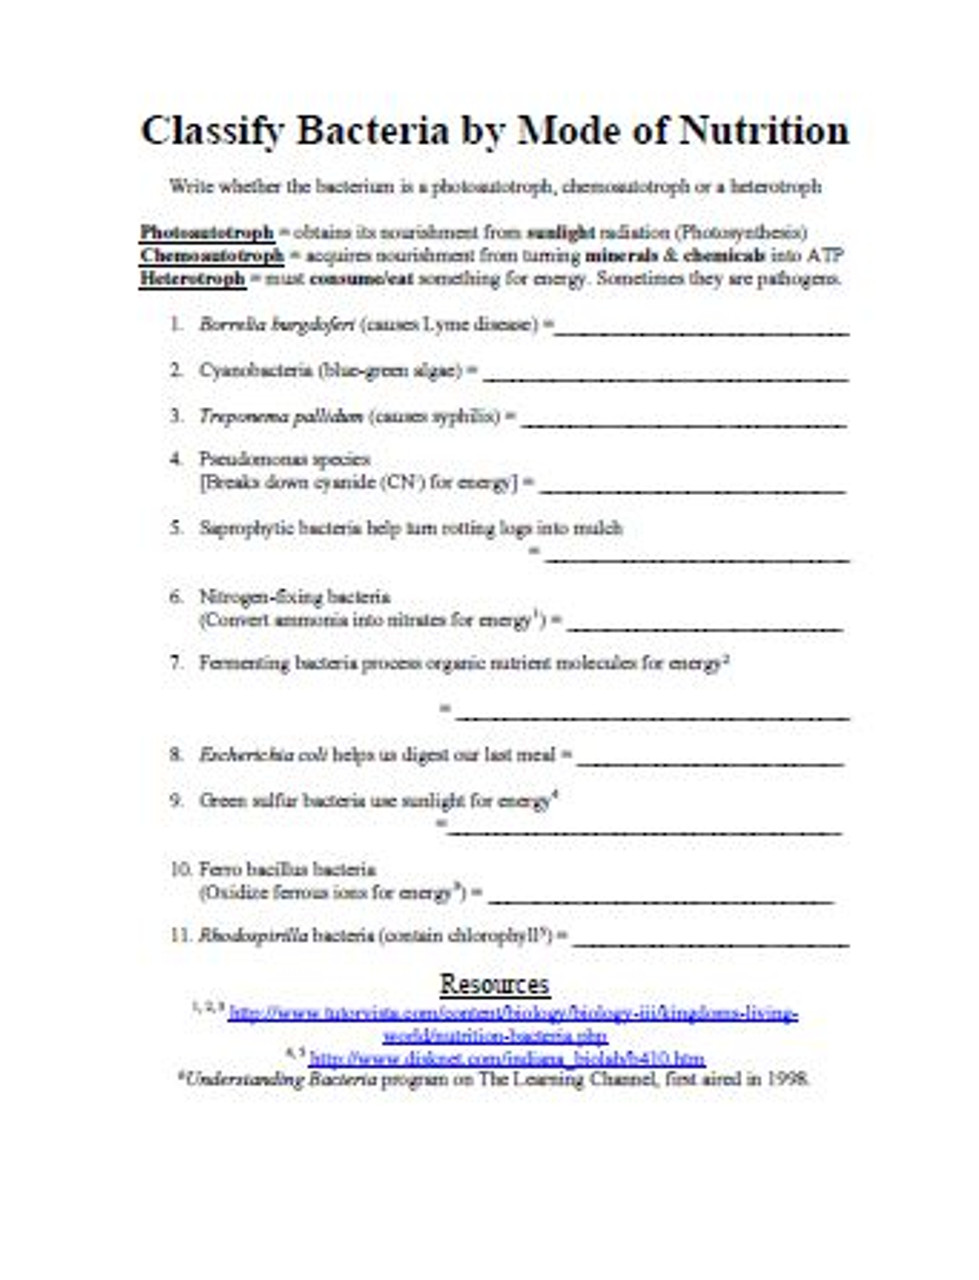 medium resolution of Bacterial Classification by Modes of Nutrition and Gas Exchange Worksheet -  Amped Up Learning